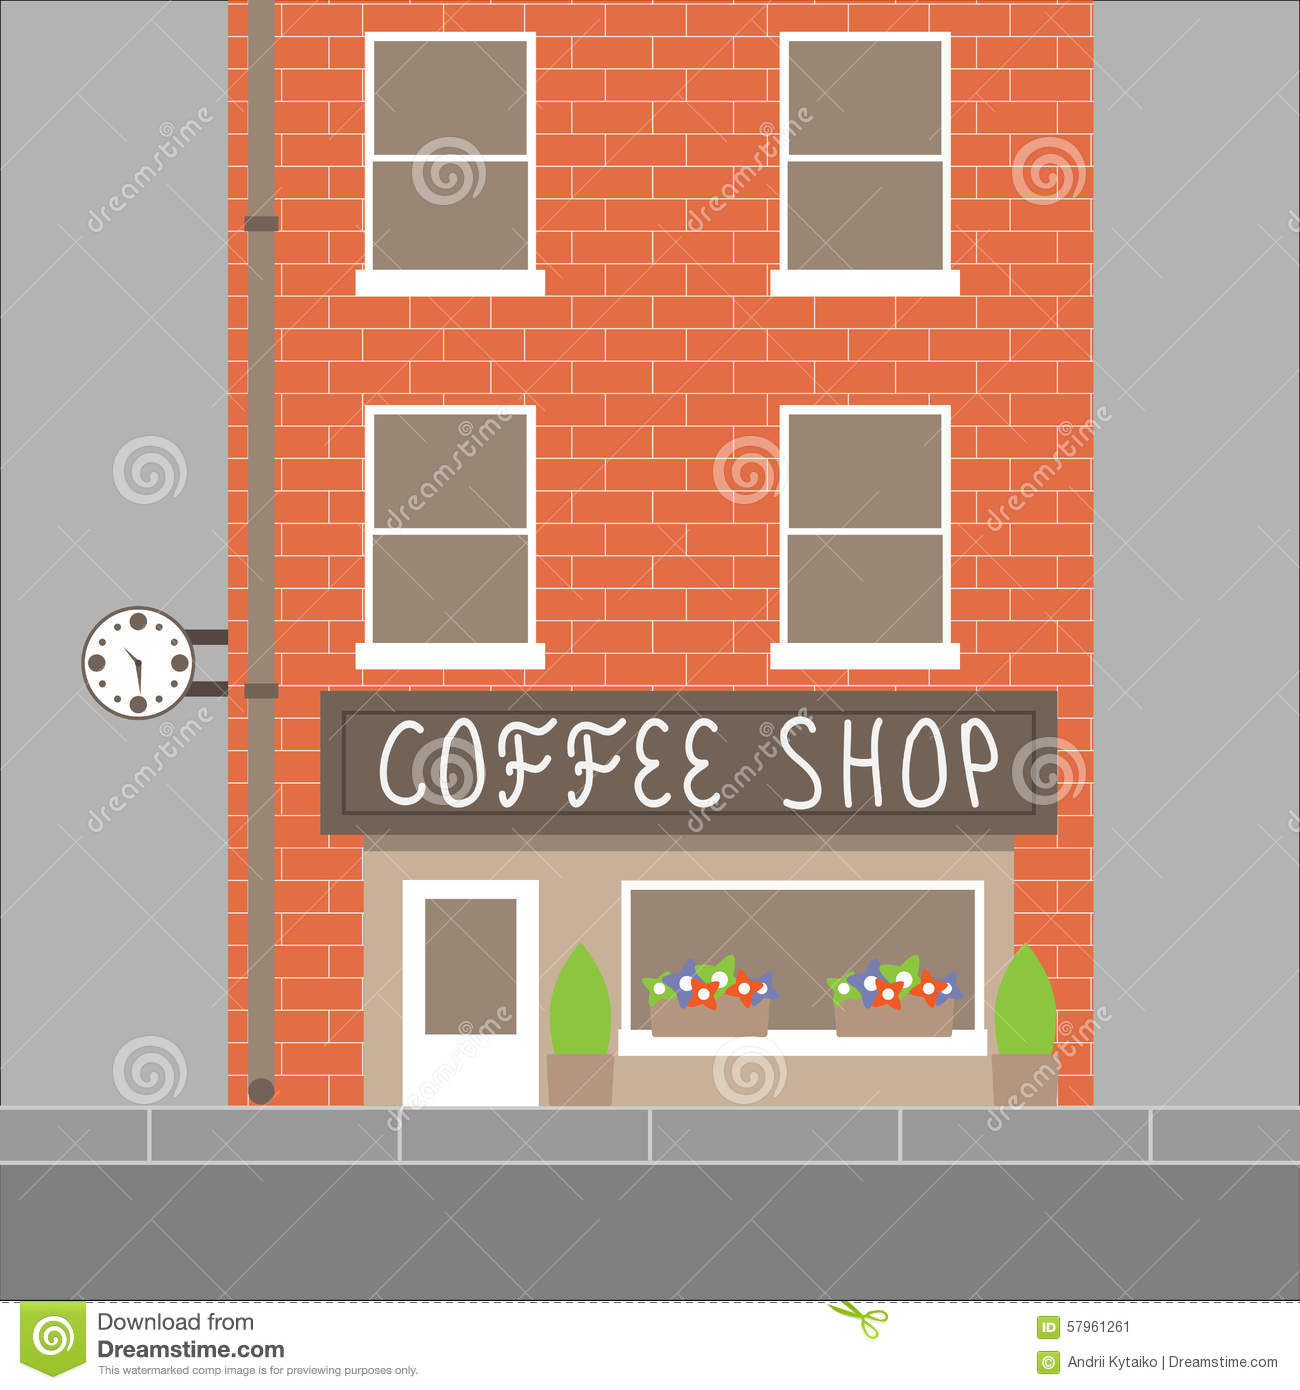 Coffee Shop Building Illustration 57961261